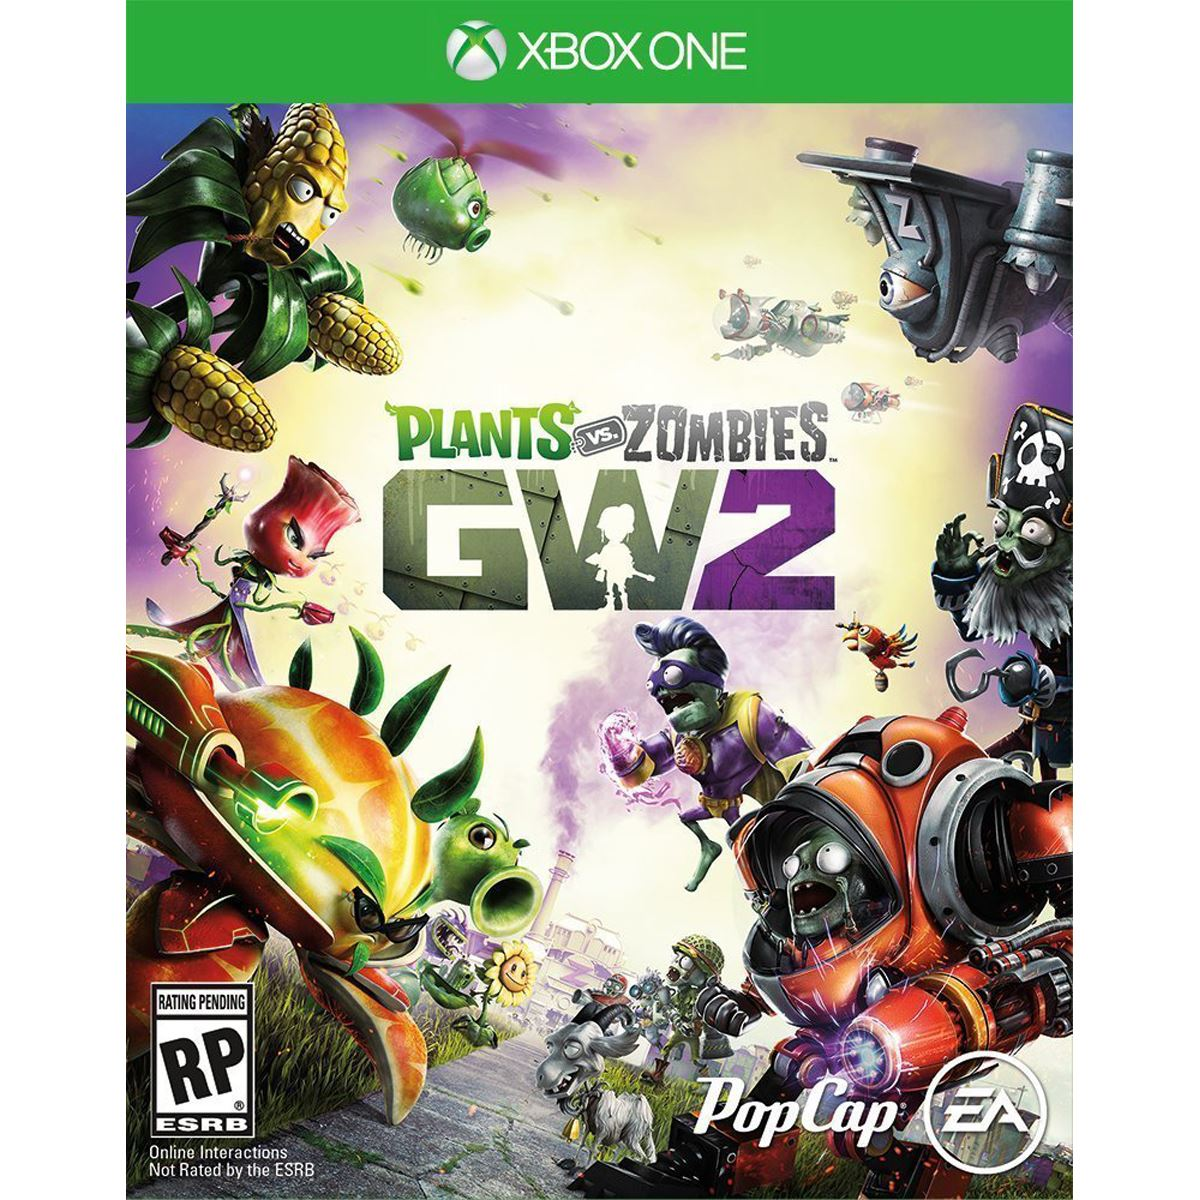 Xbox one plants vs zombies gw2  - Sanborns